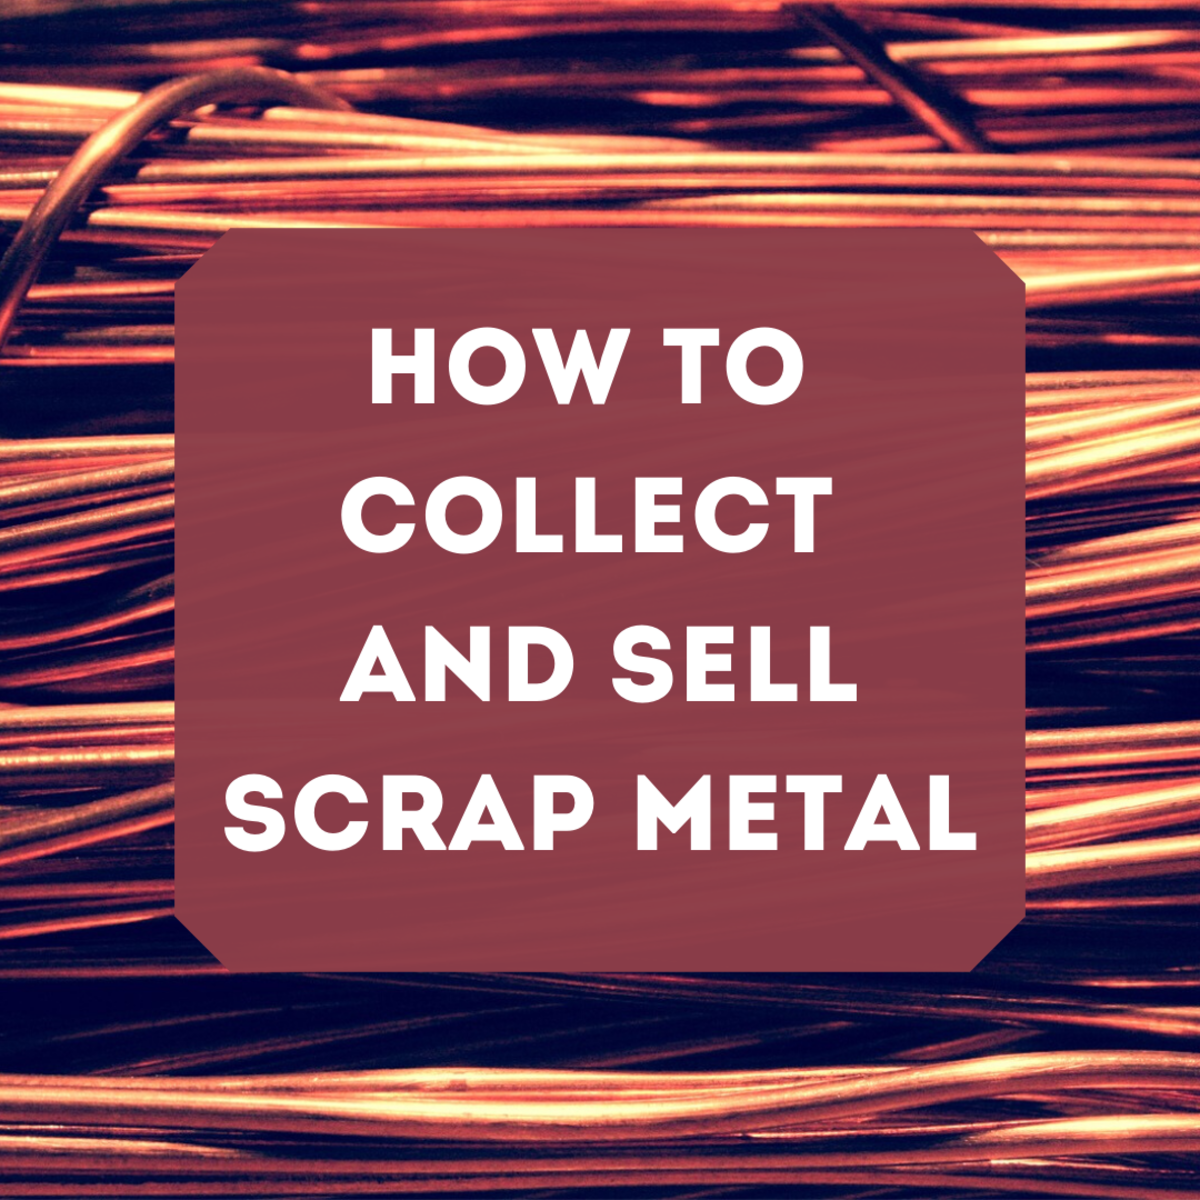 Learn how to make money by recycling scrap metal.